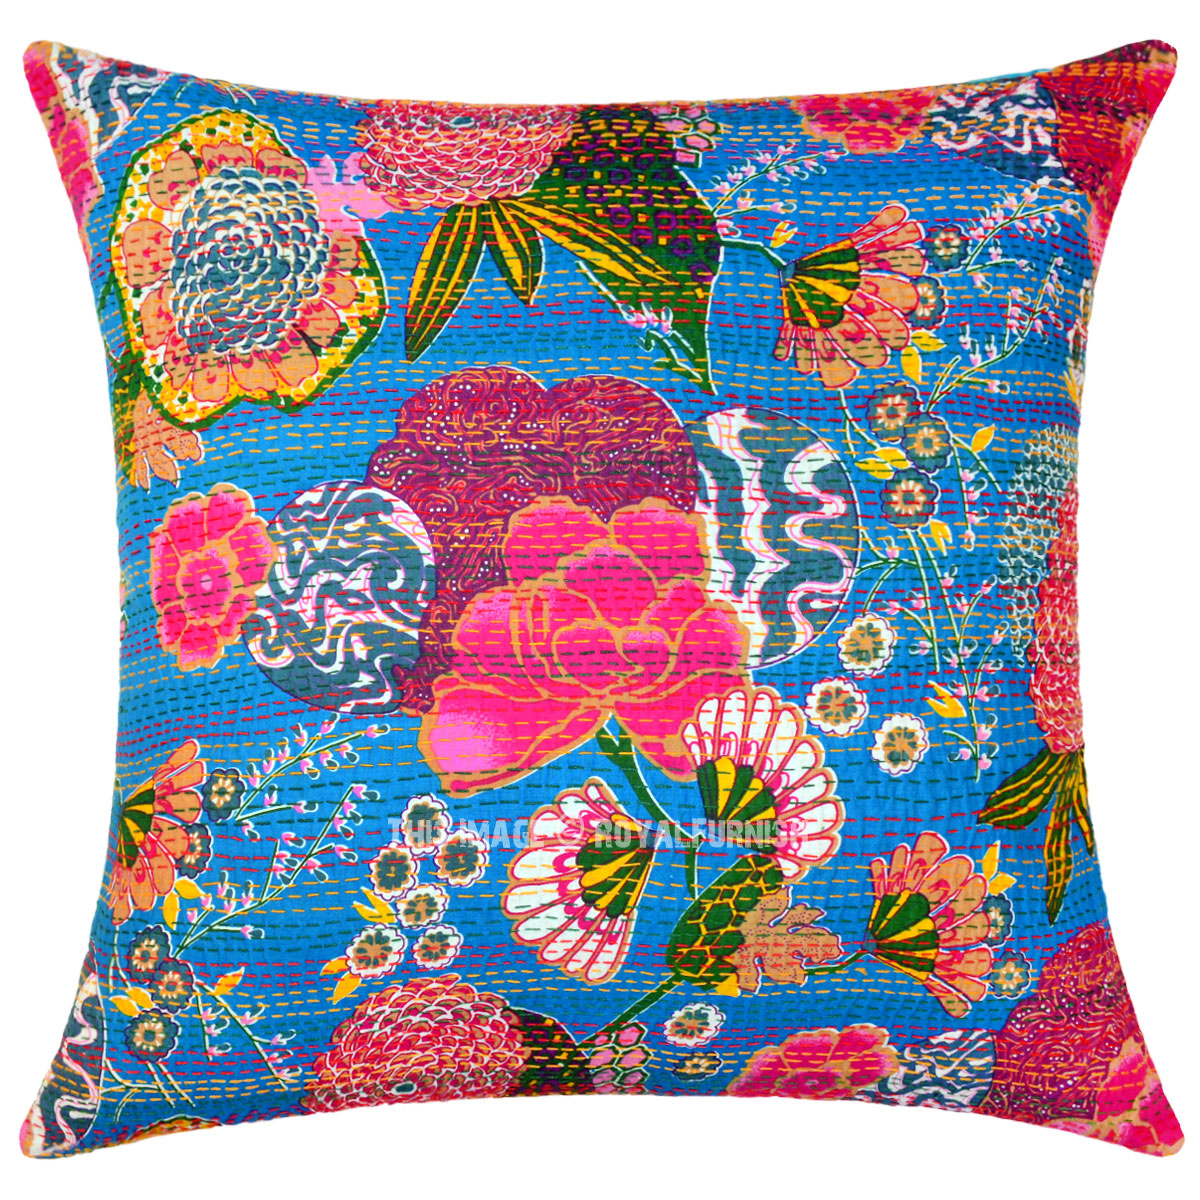 Large Blue Decorative  Accent Kantha Throw Pillow Cover